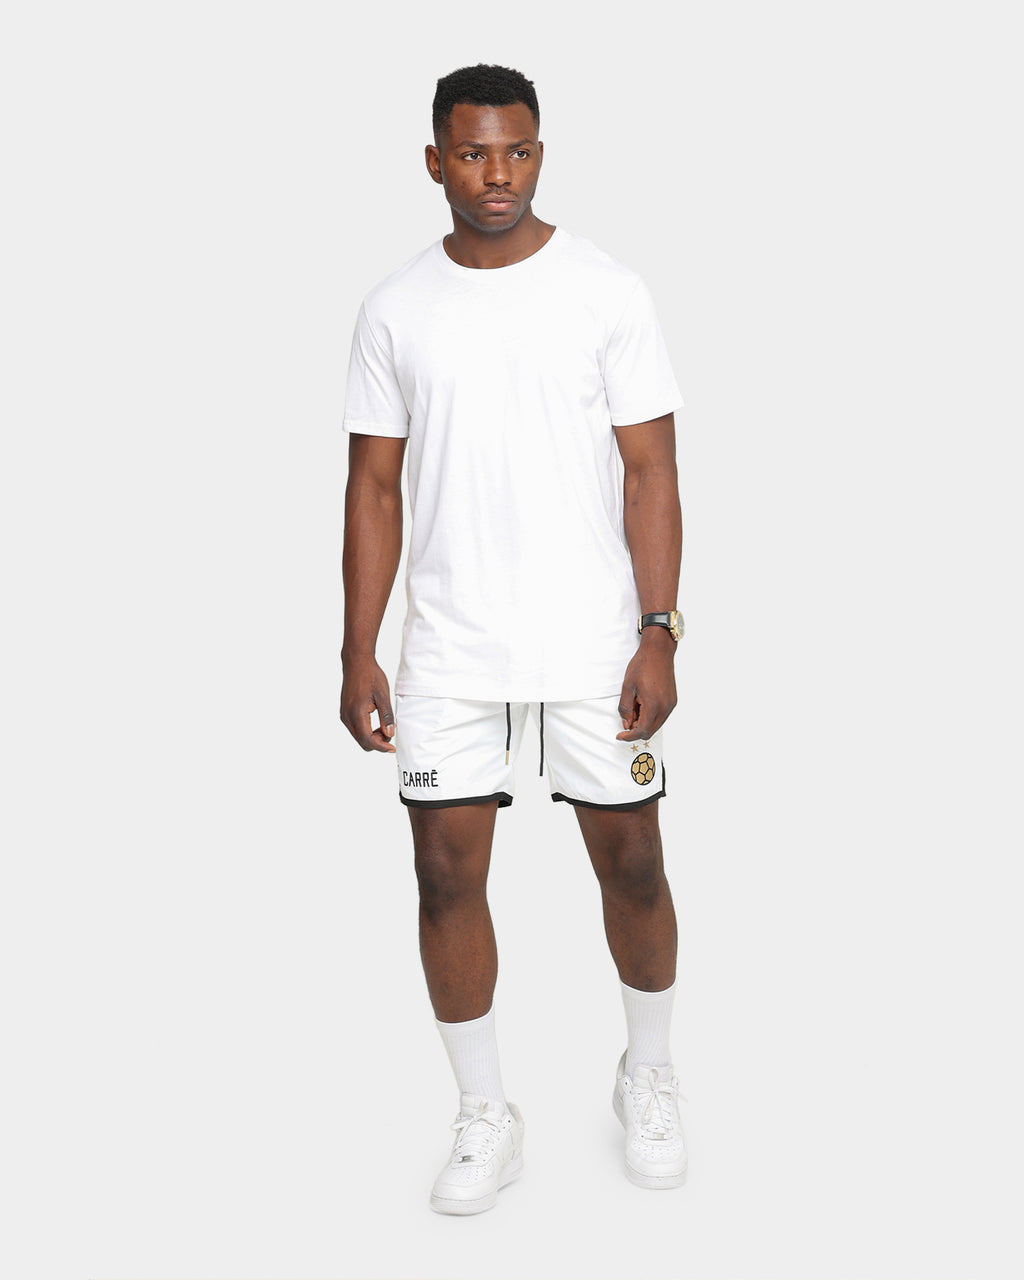 Carré Men's Deux Shorts White/Black